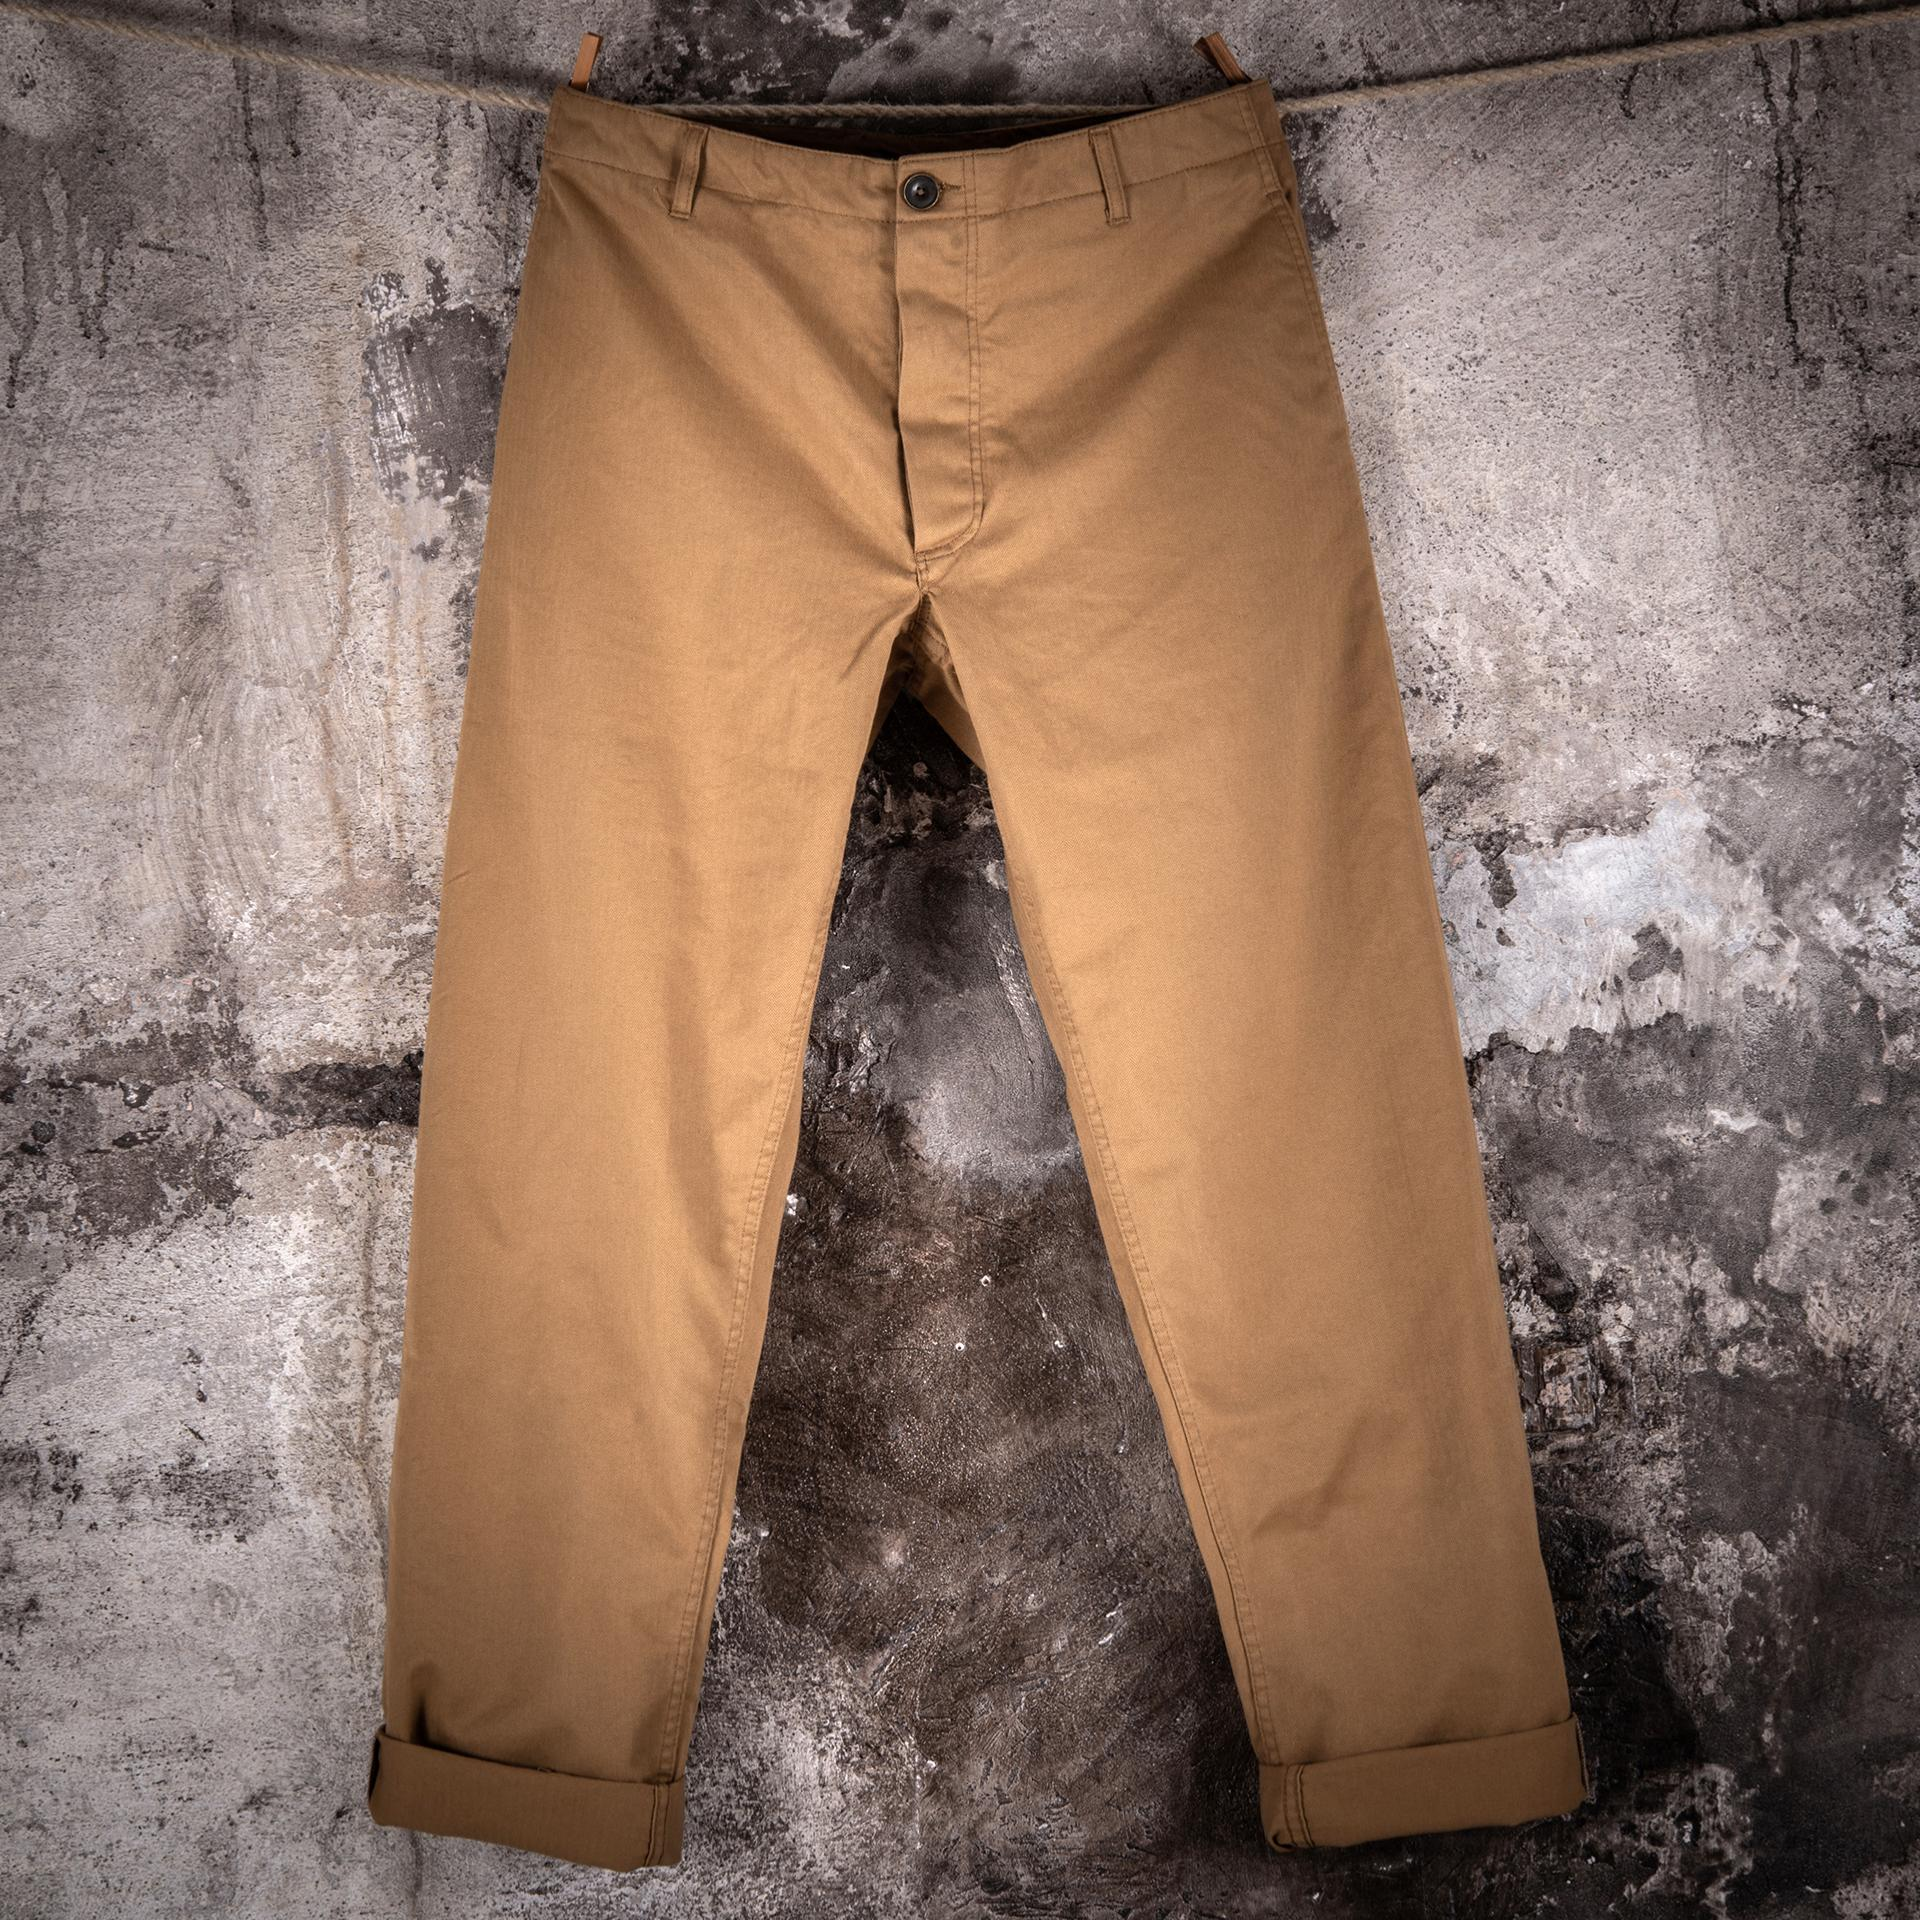 LE CHINO HBT CAMEL